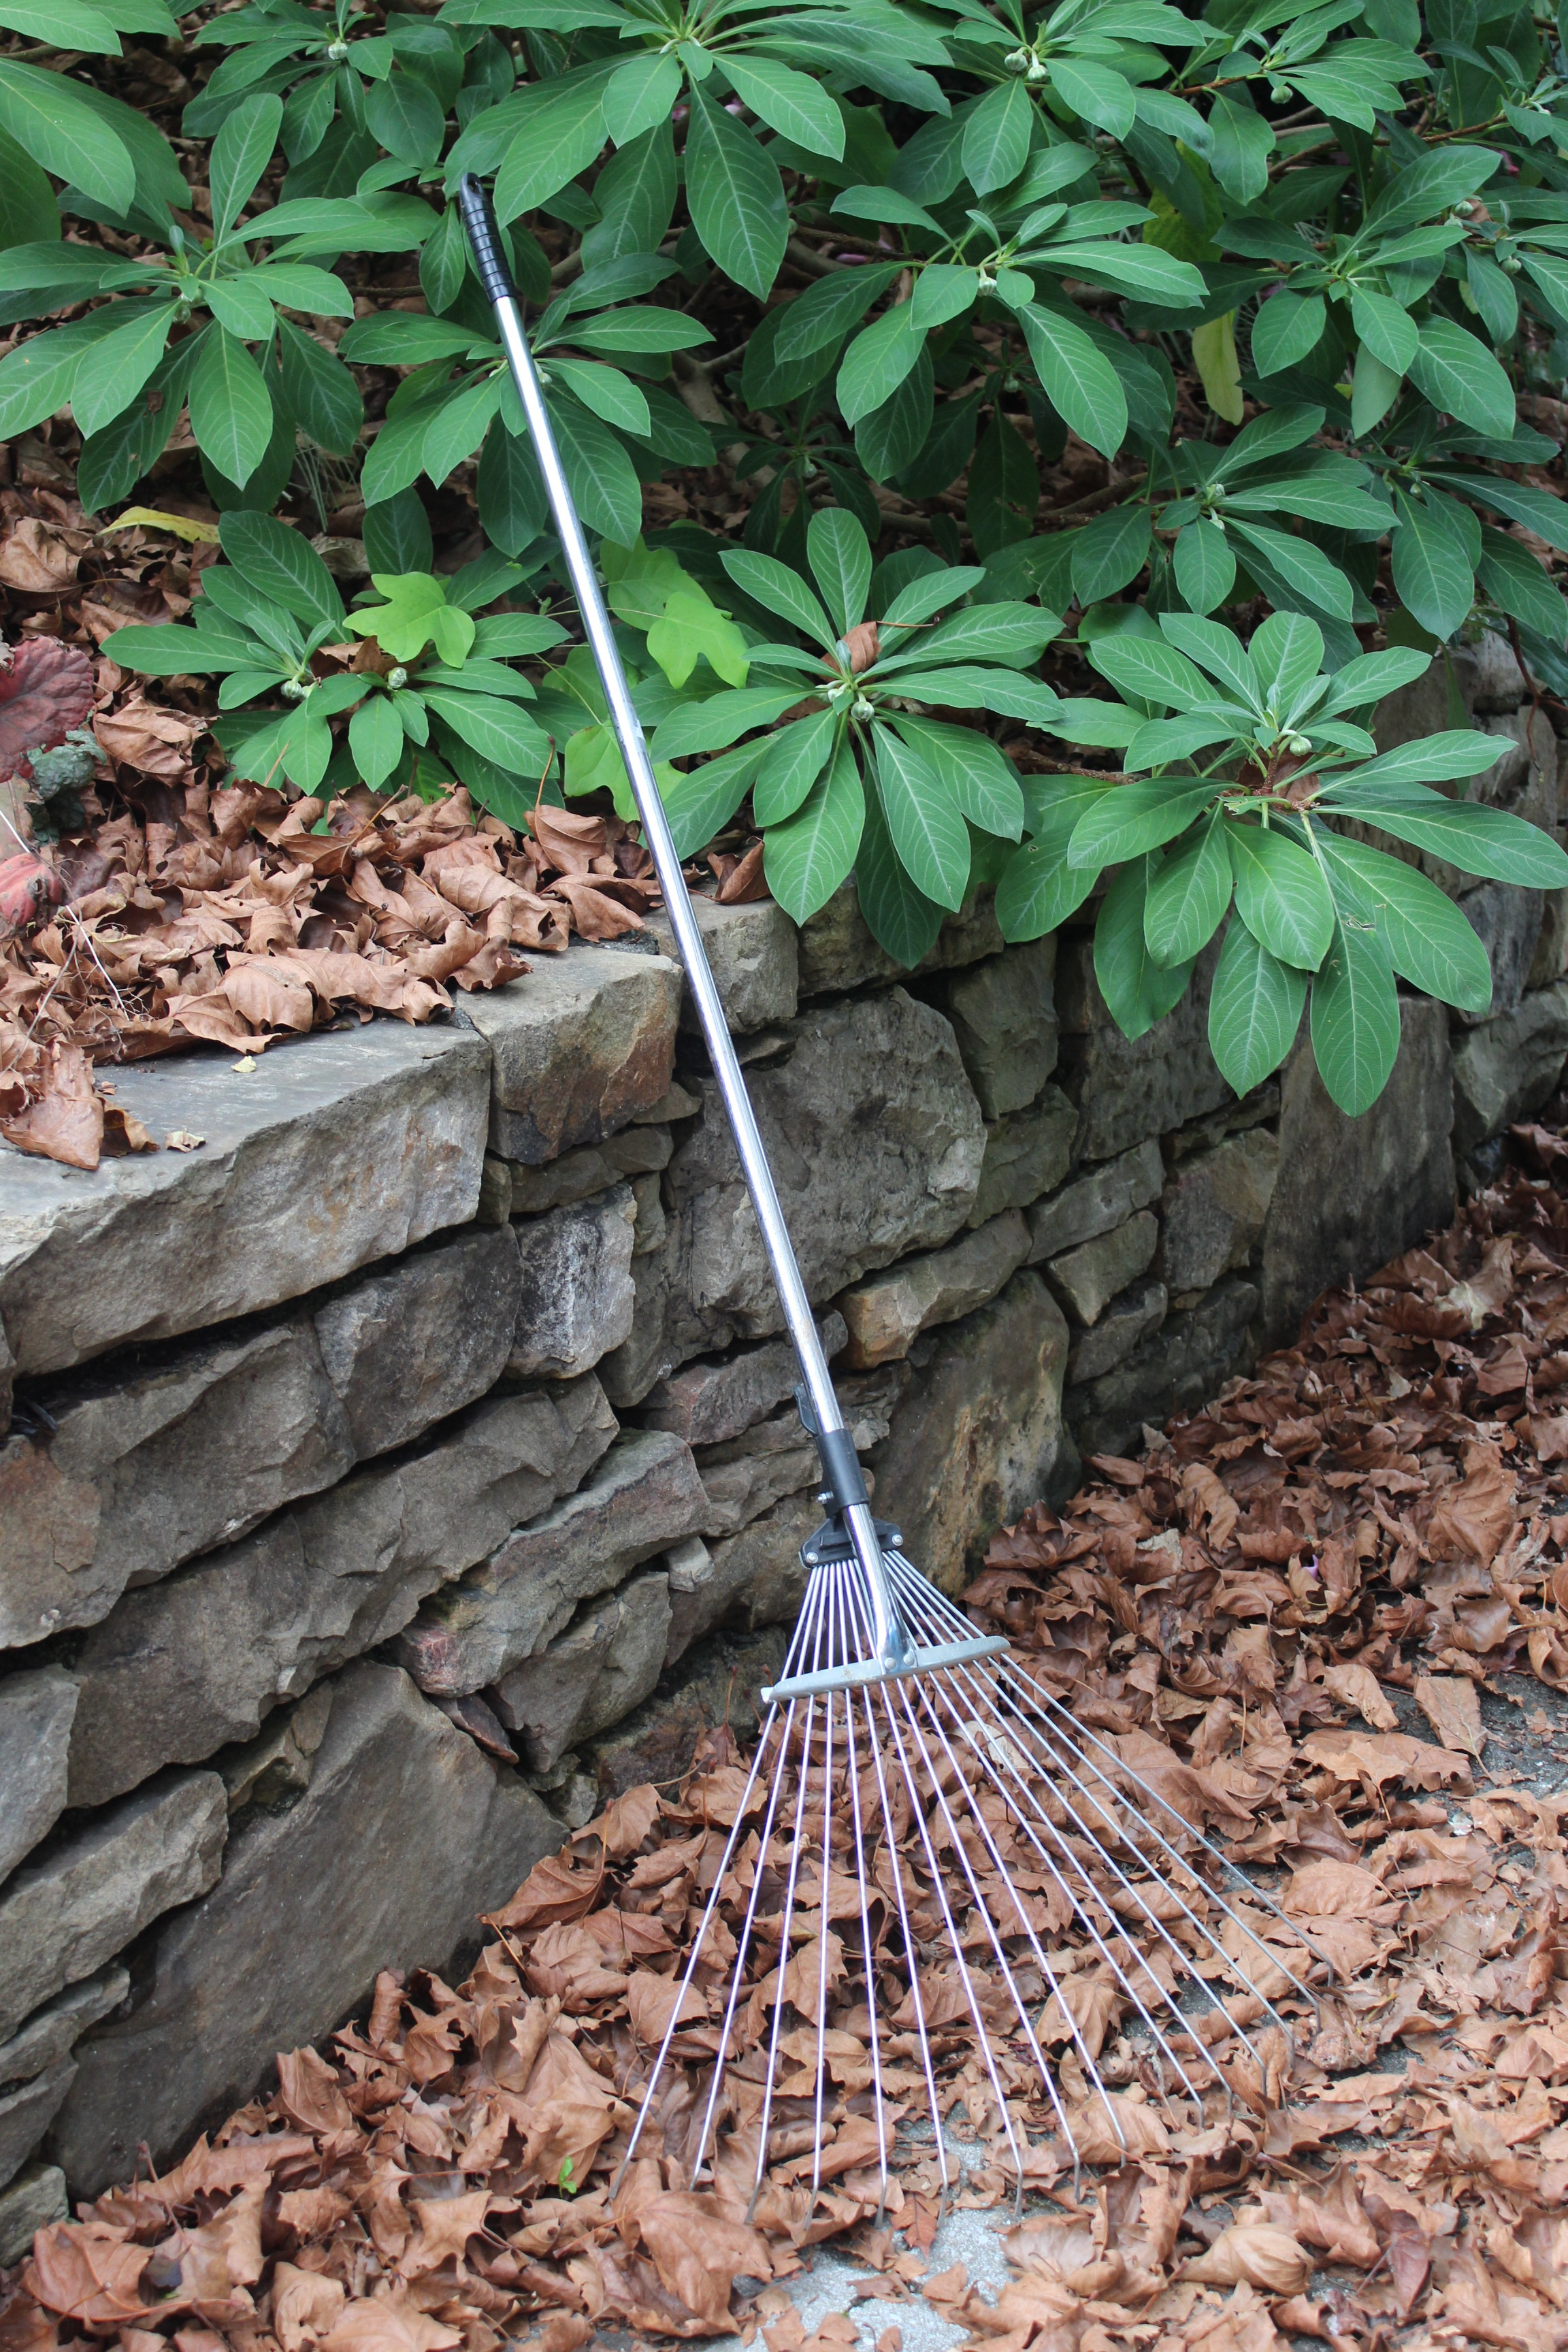 The stainless steel collapsible rake adjusts to fit many jobs.